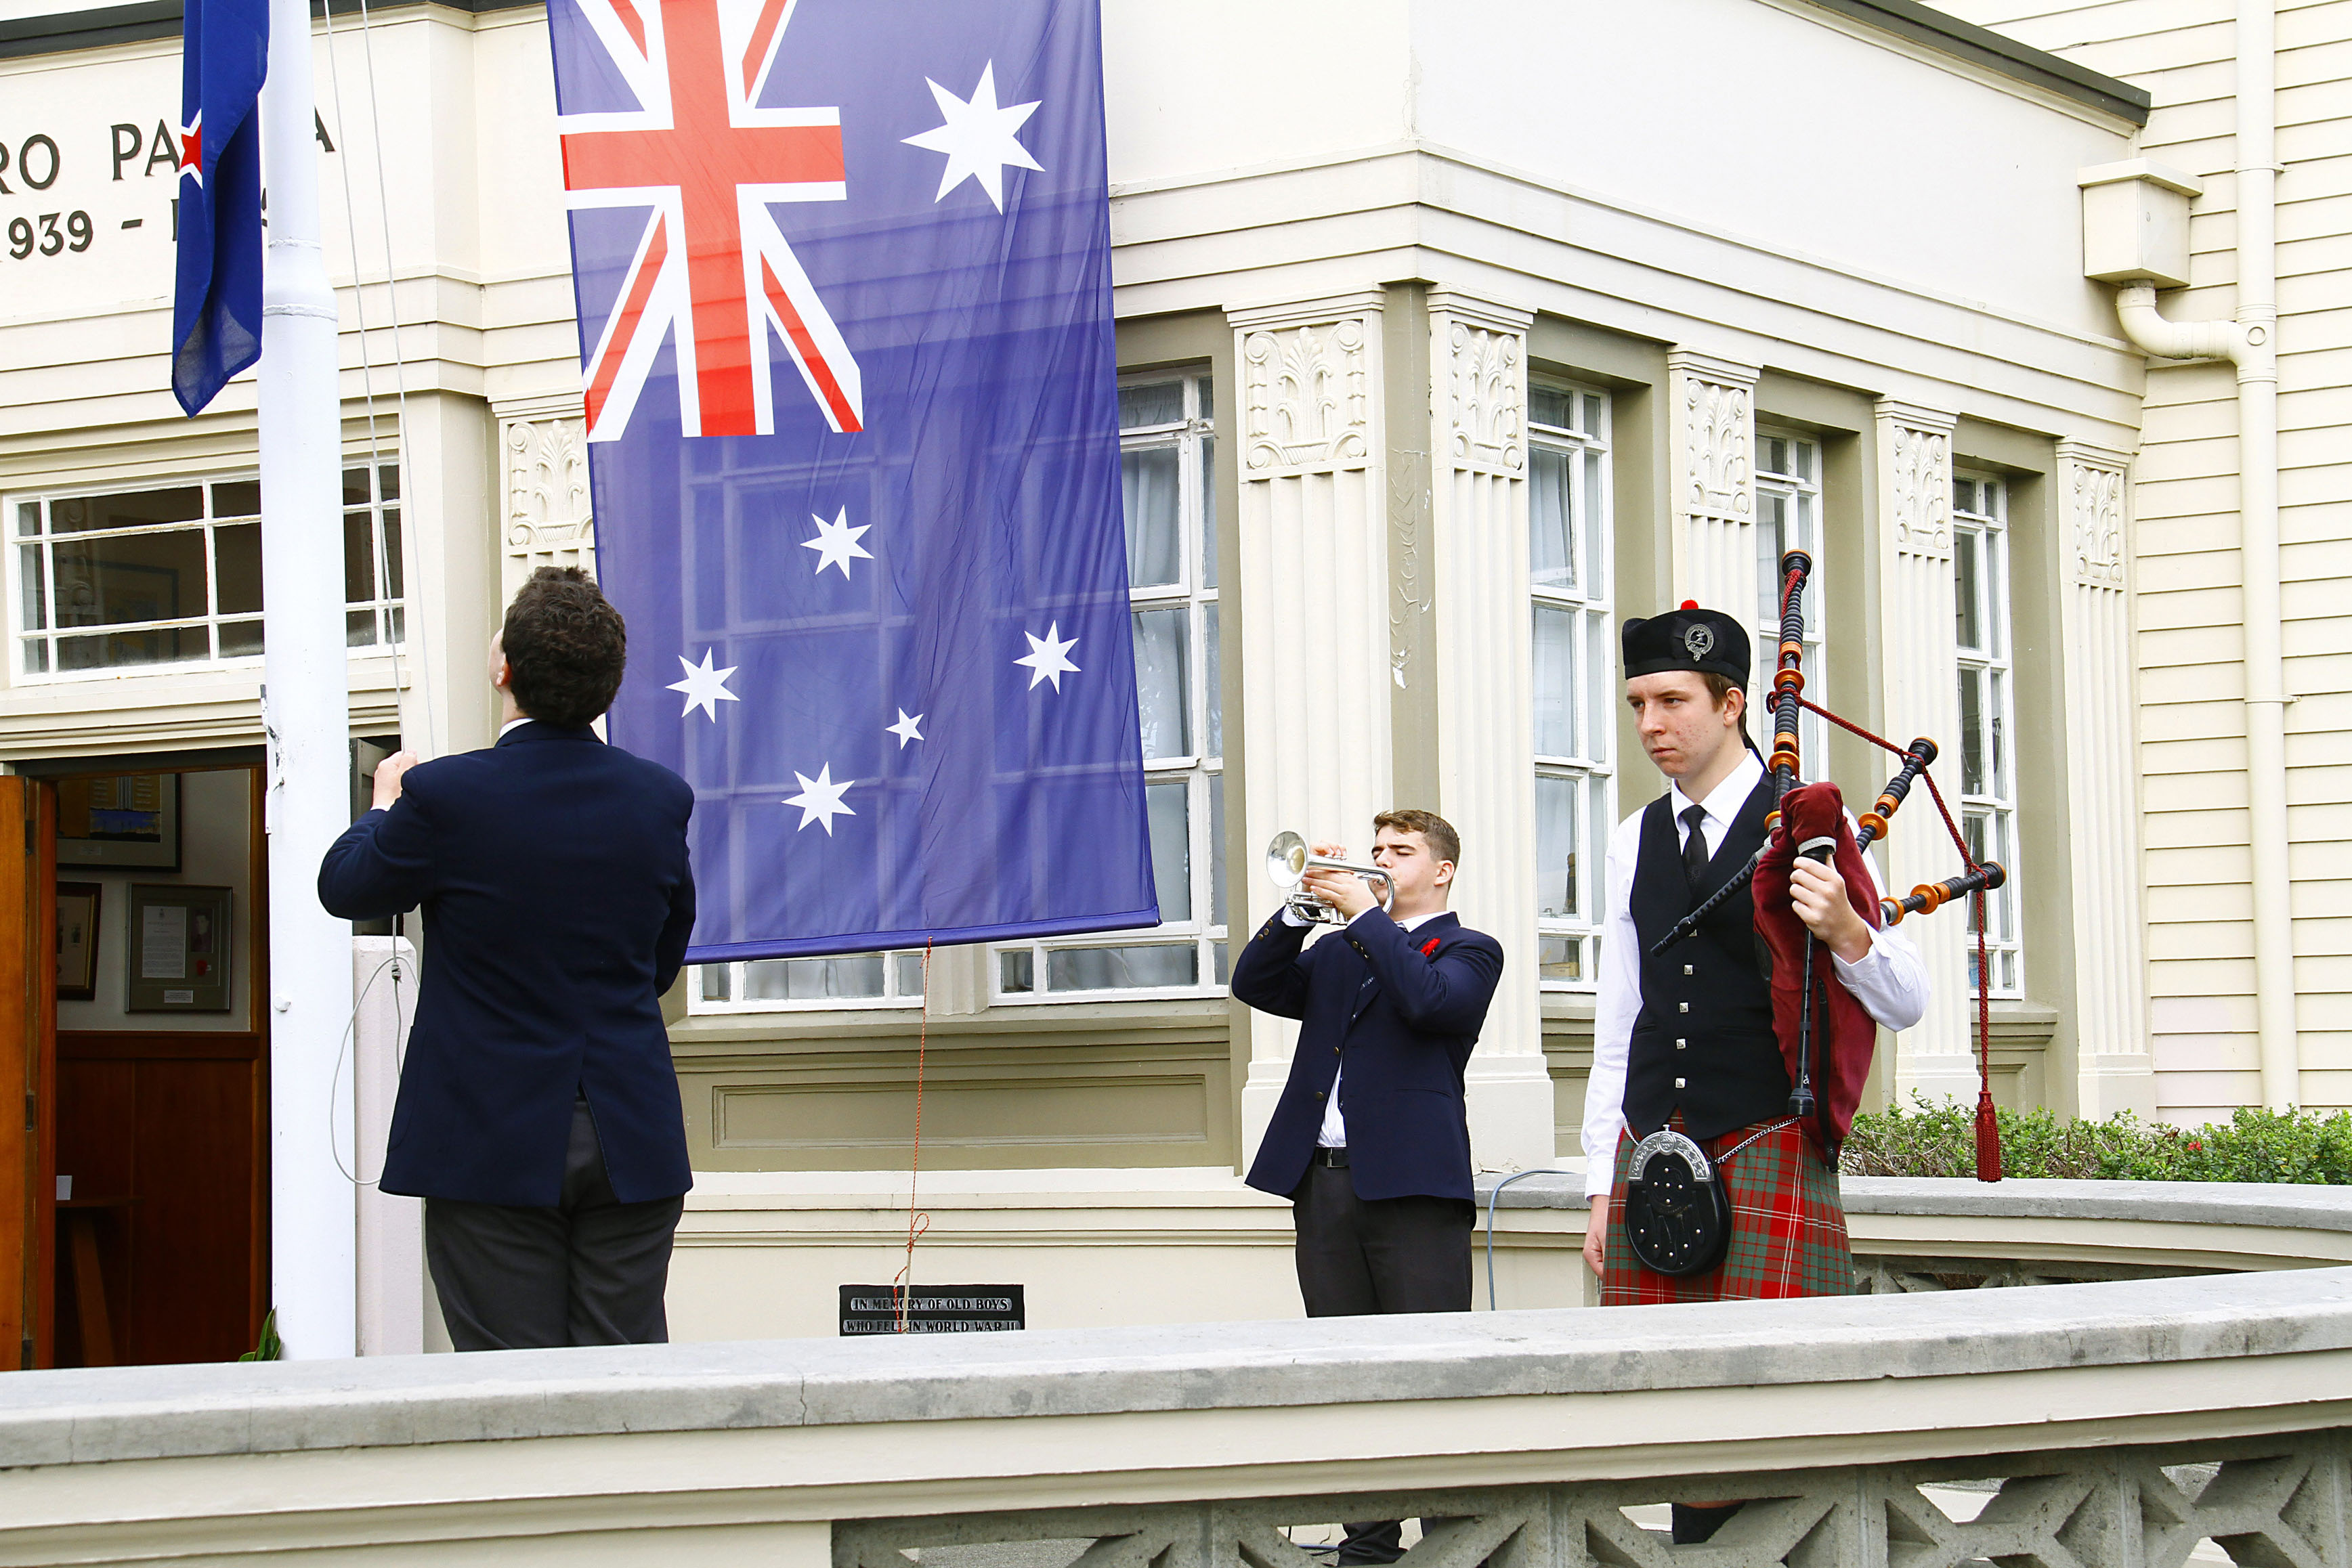 PNBHS 2019 School ANZAC Service Image by Gary Rodgers / Magnum Images  www.magnum-images.co.nz